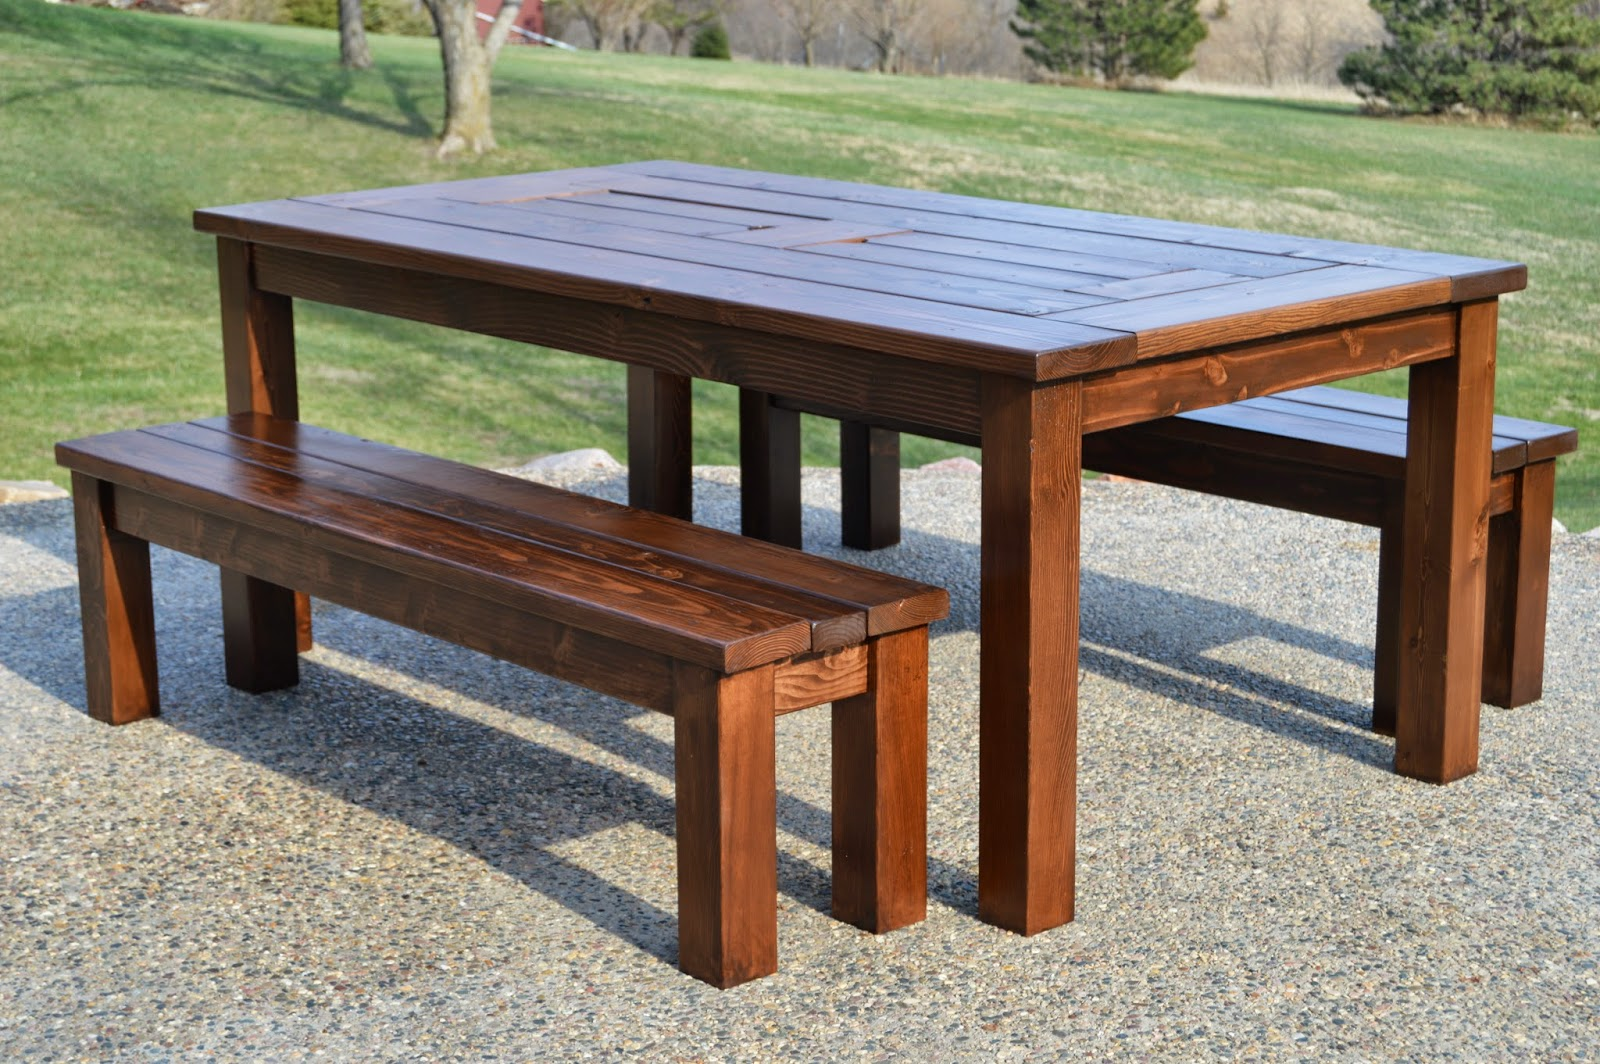 Porch Table Kruse 39s Workshop Step By Step Patio Table Plans With